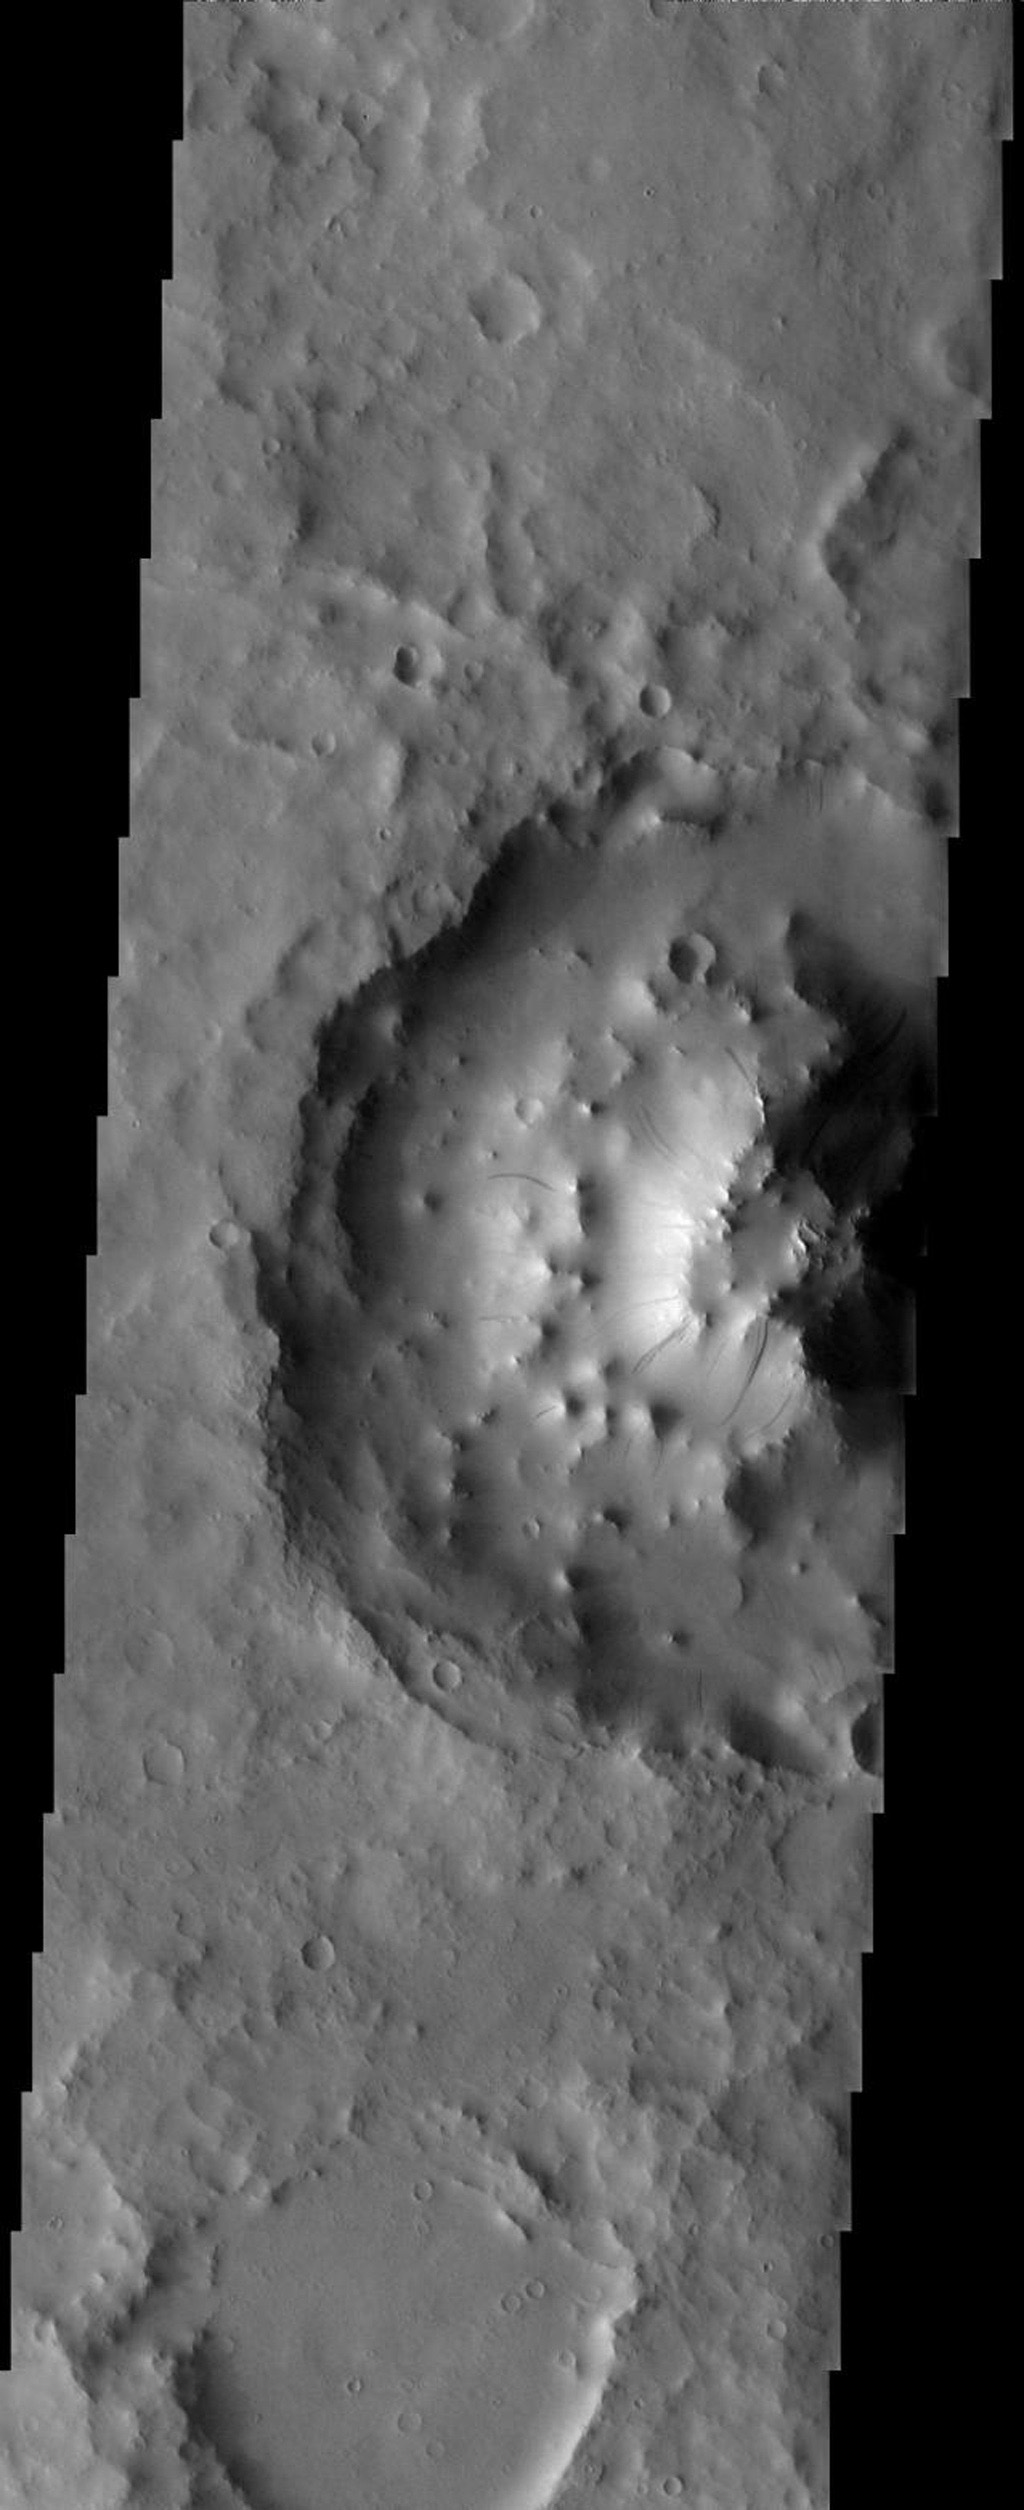 This image taken by NASA's 2001 Mars Odyssey shows the height of the interior mound of sediment inside this unnamed crater on Mars.